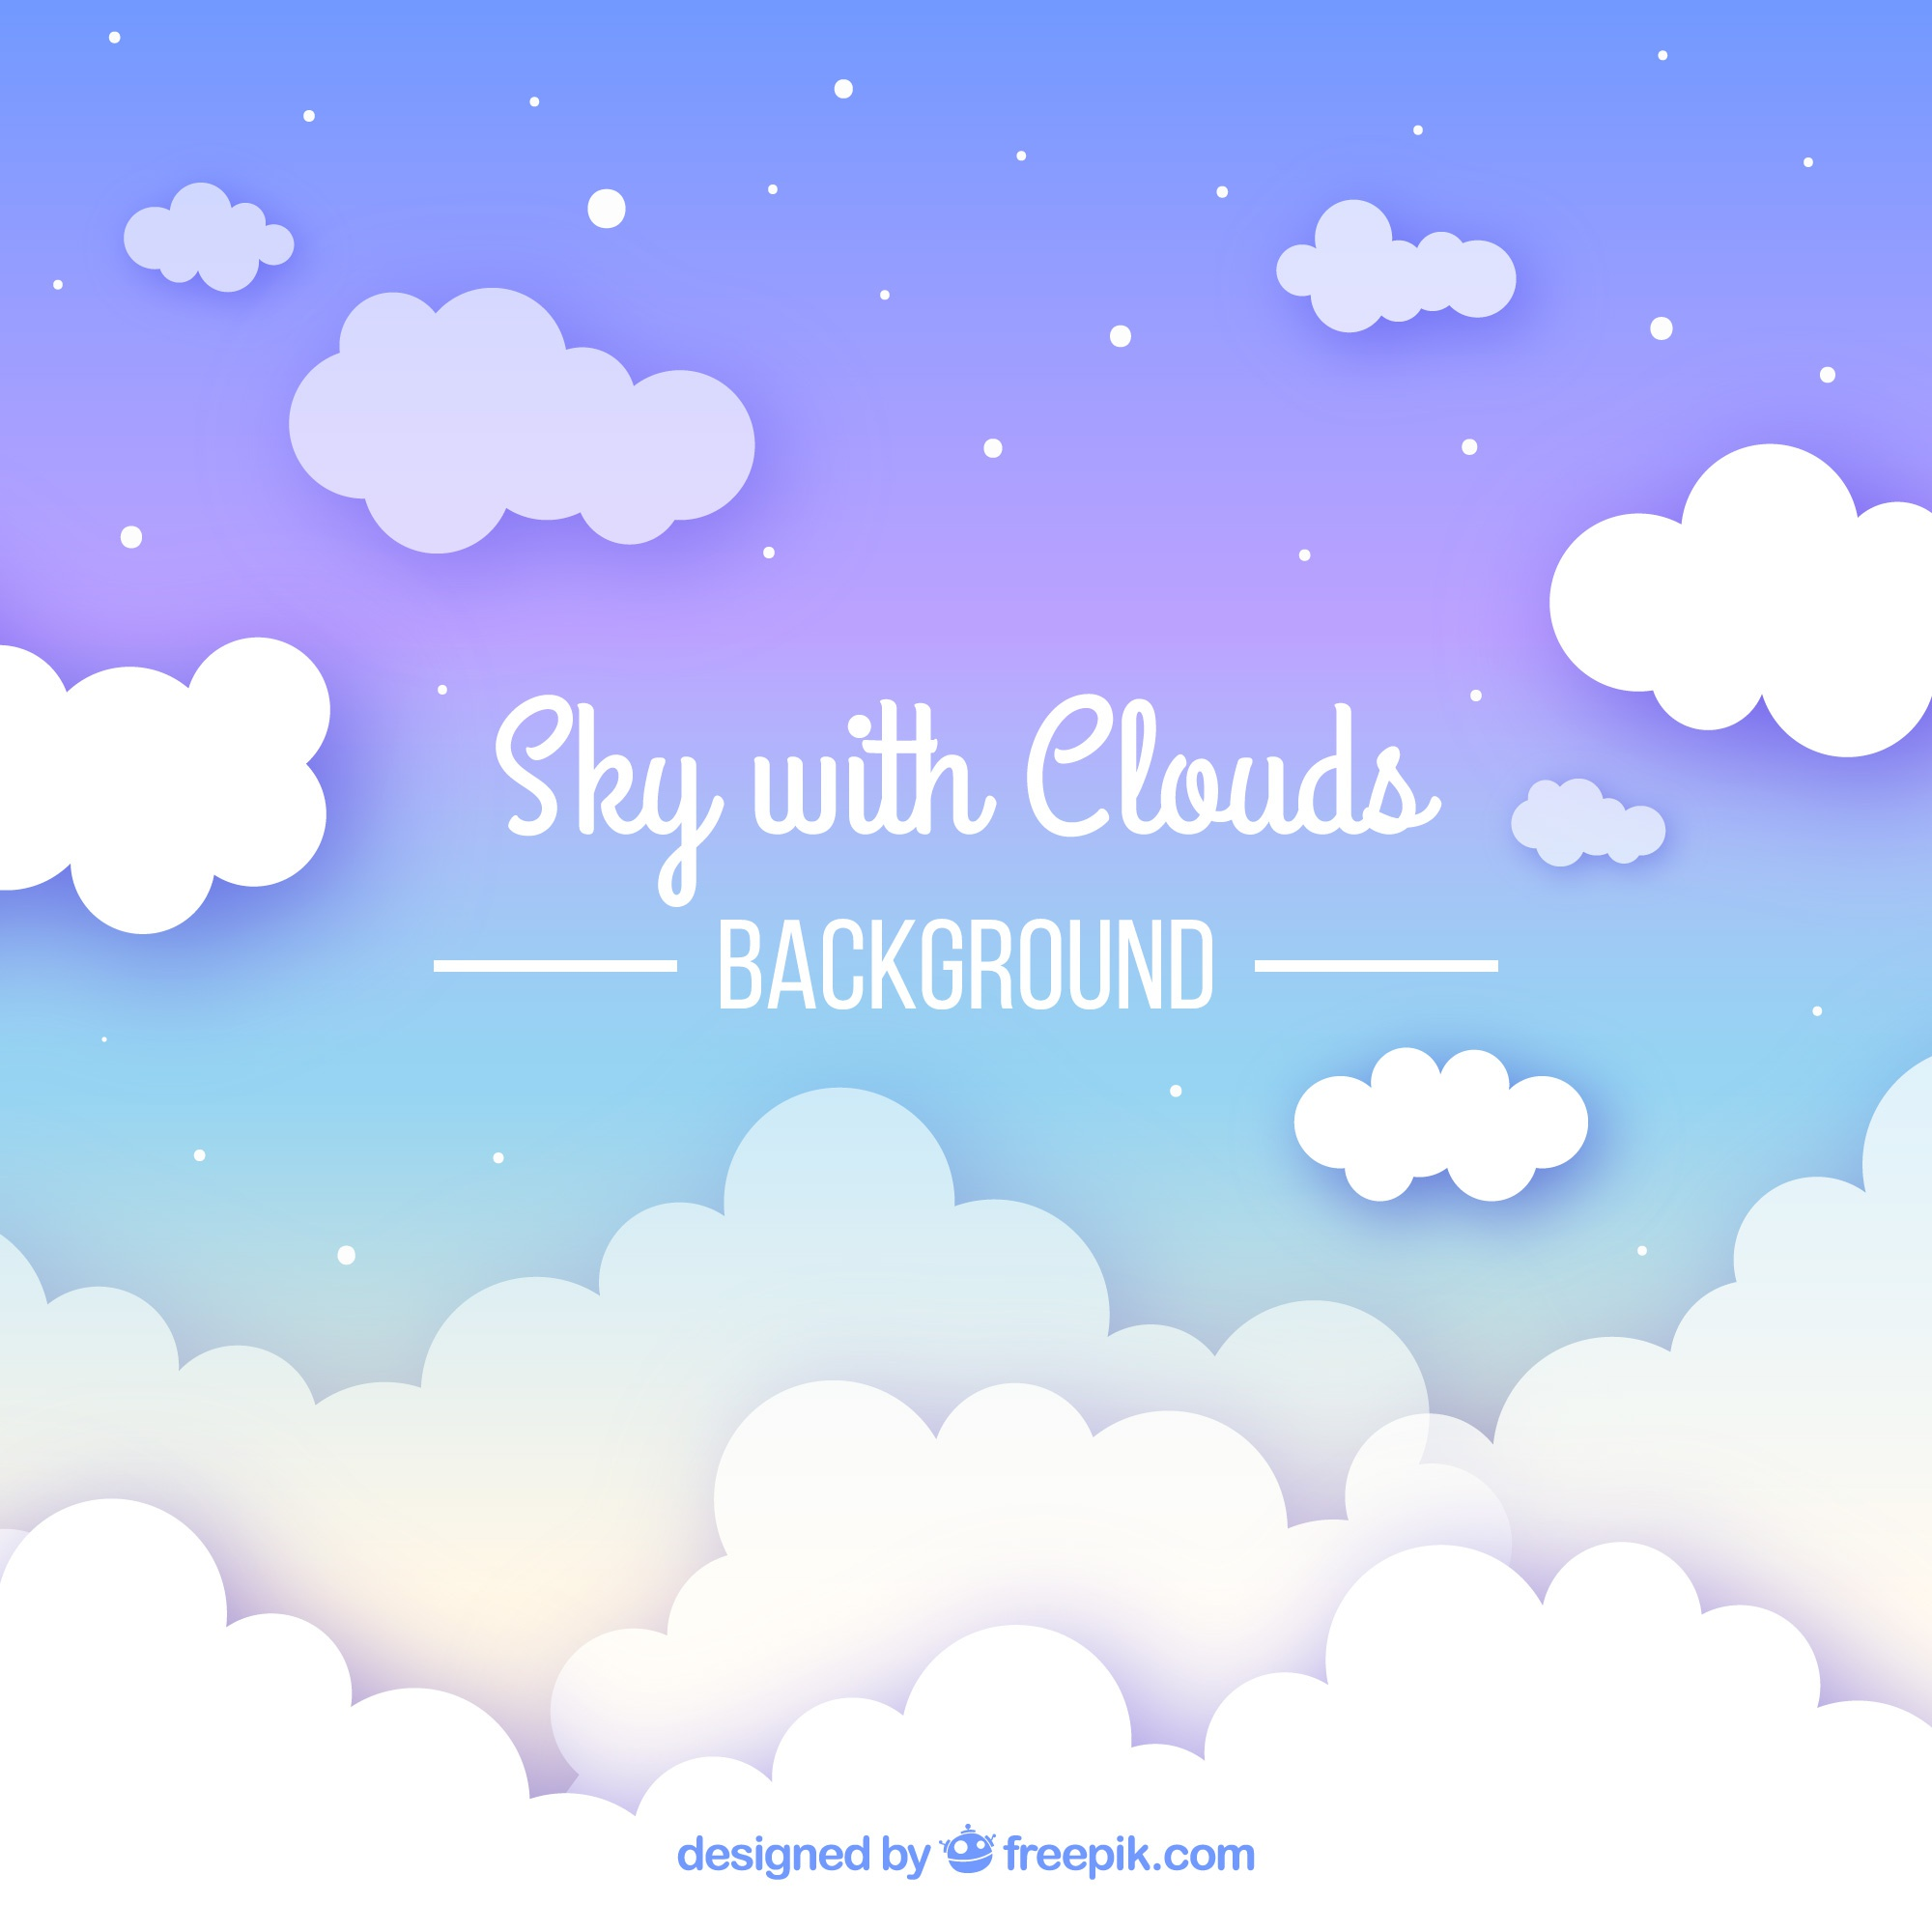 Cloudy sky background in flat style